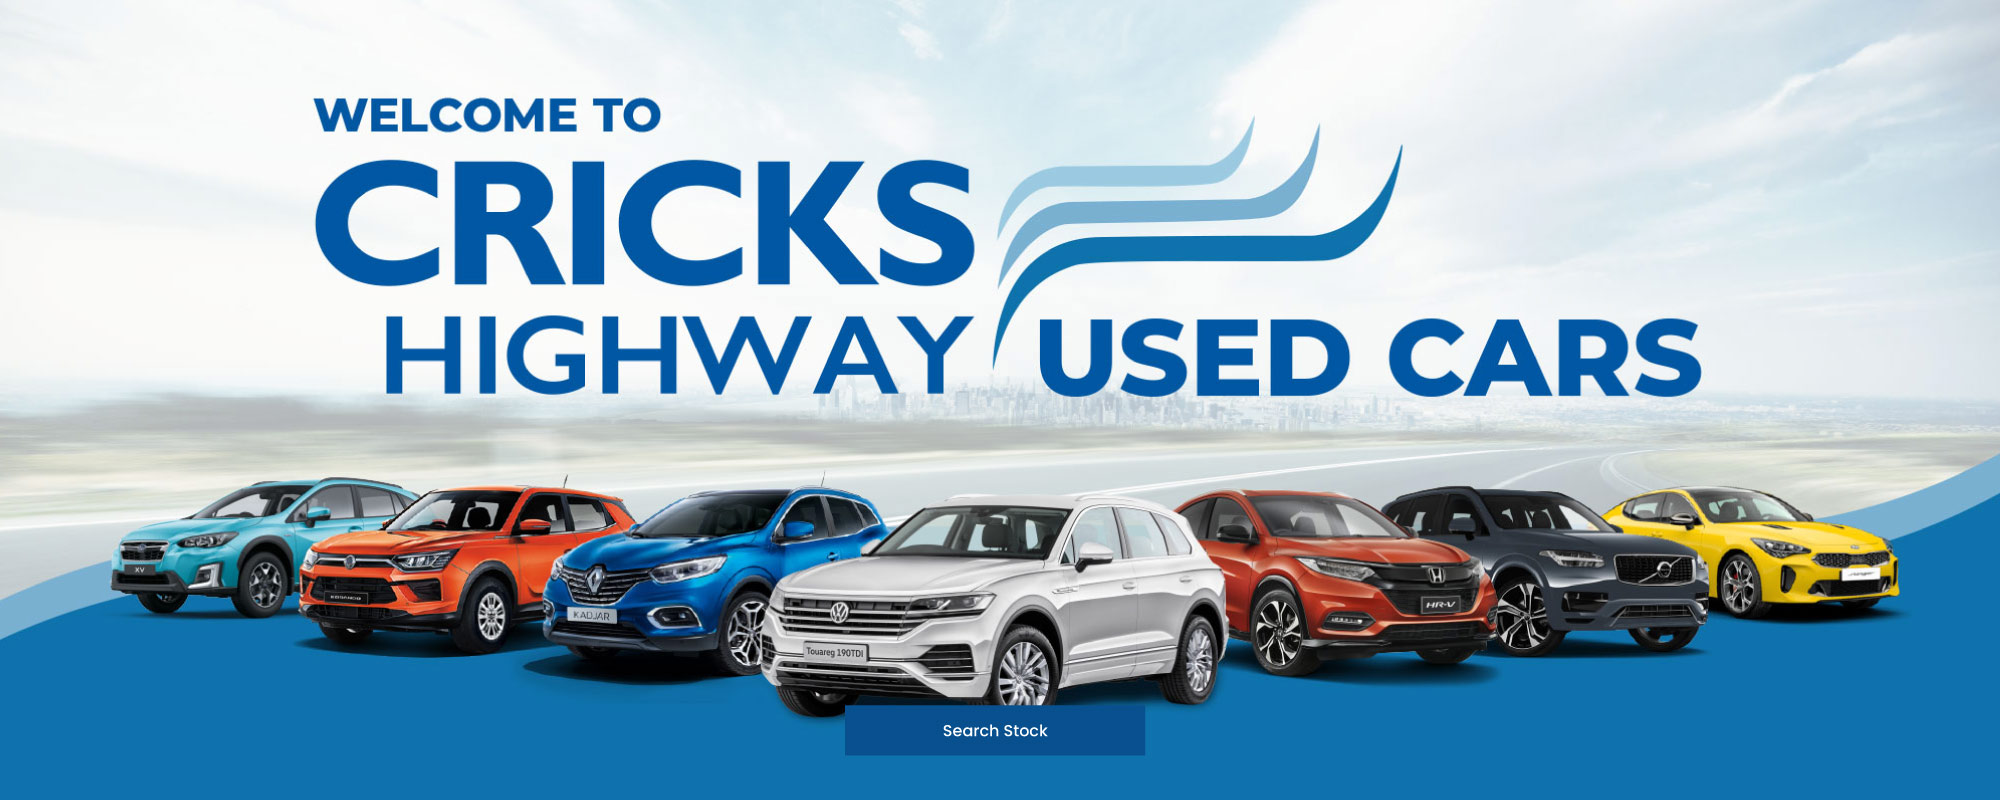 Banner Usedcars 800x May21